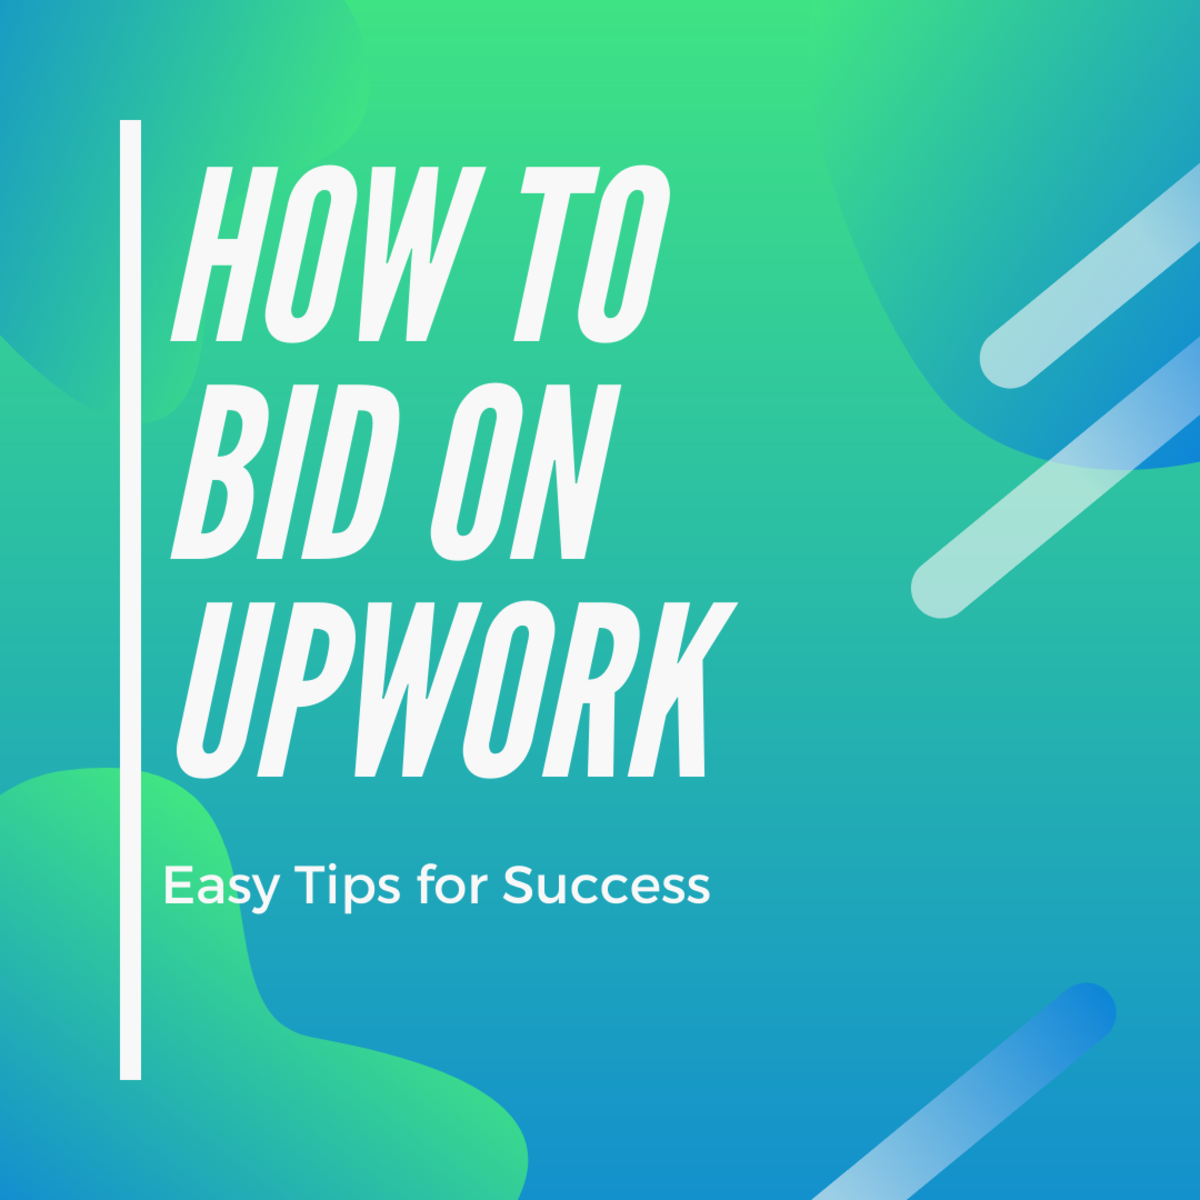 How to Bid on Upwork: Easy Tips for Success